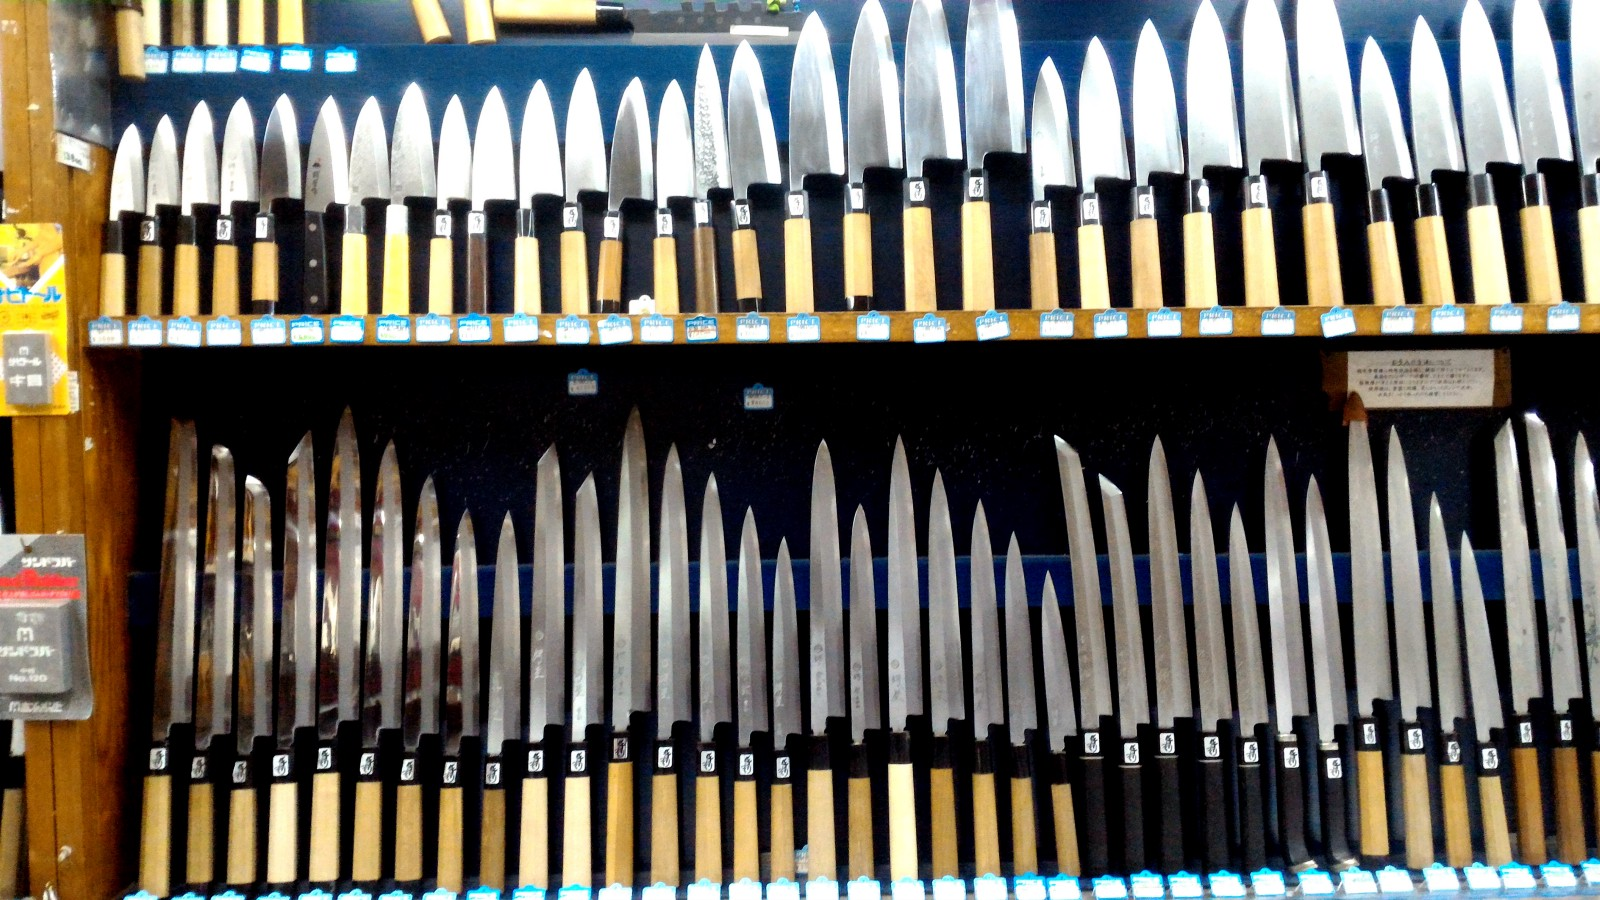 A wide selection of knives for various purposes